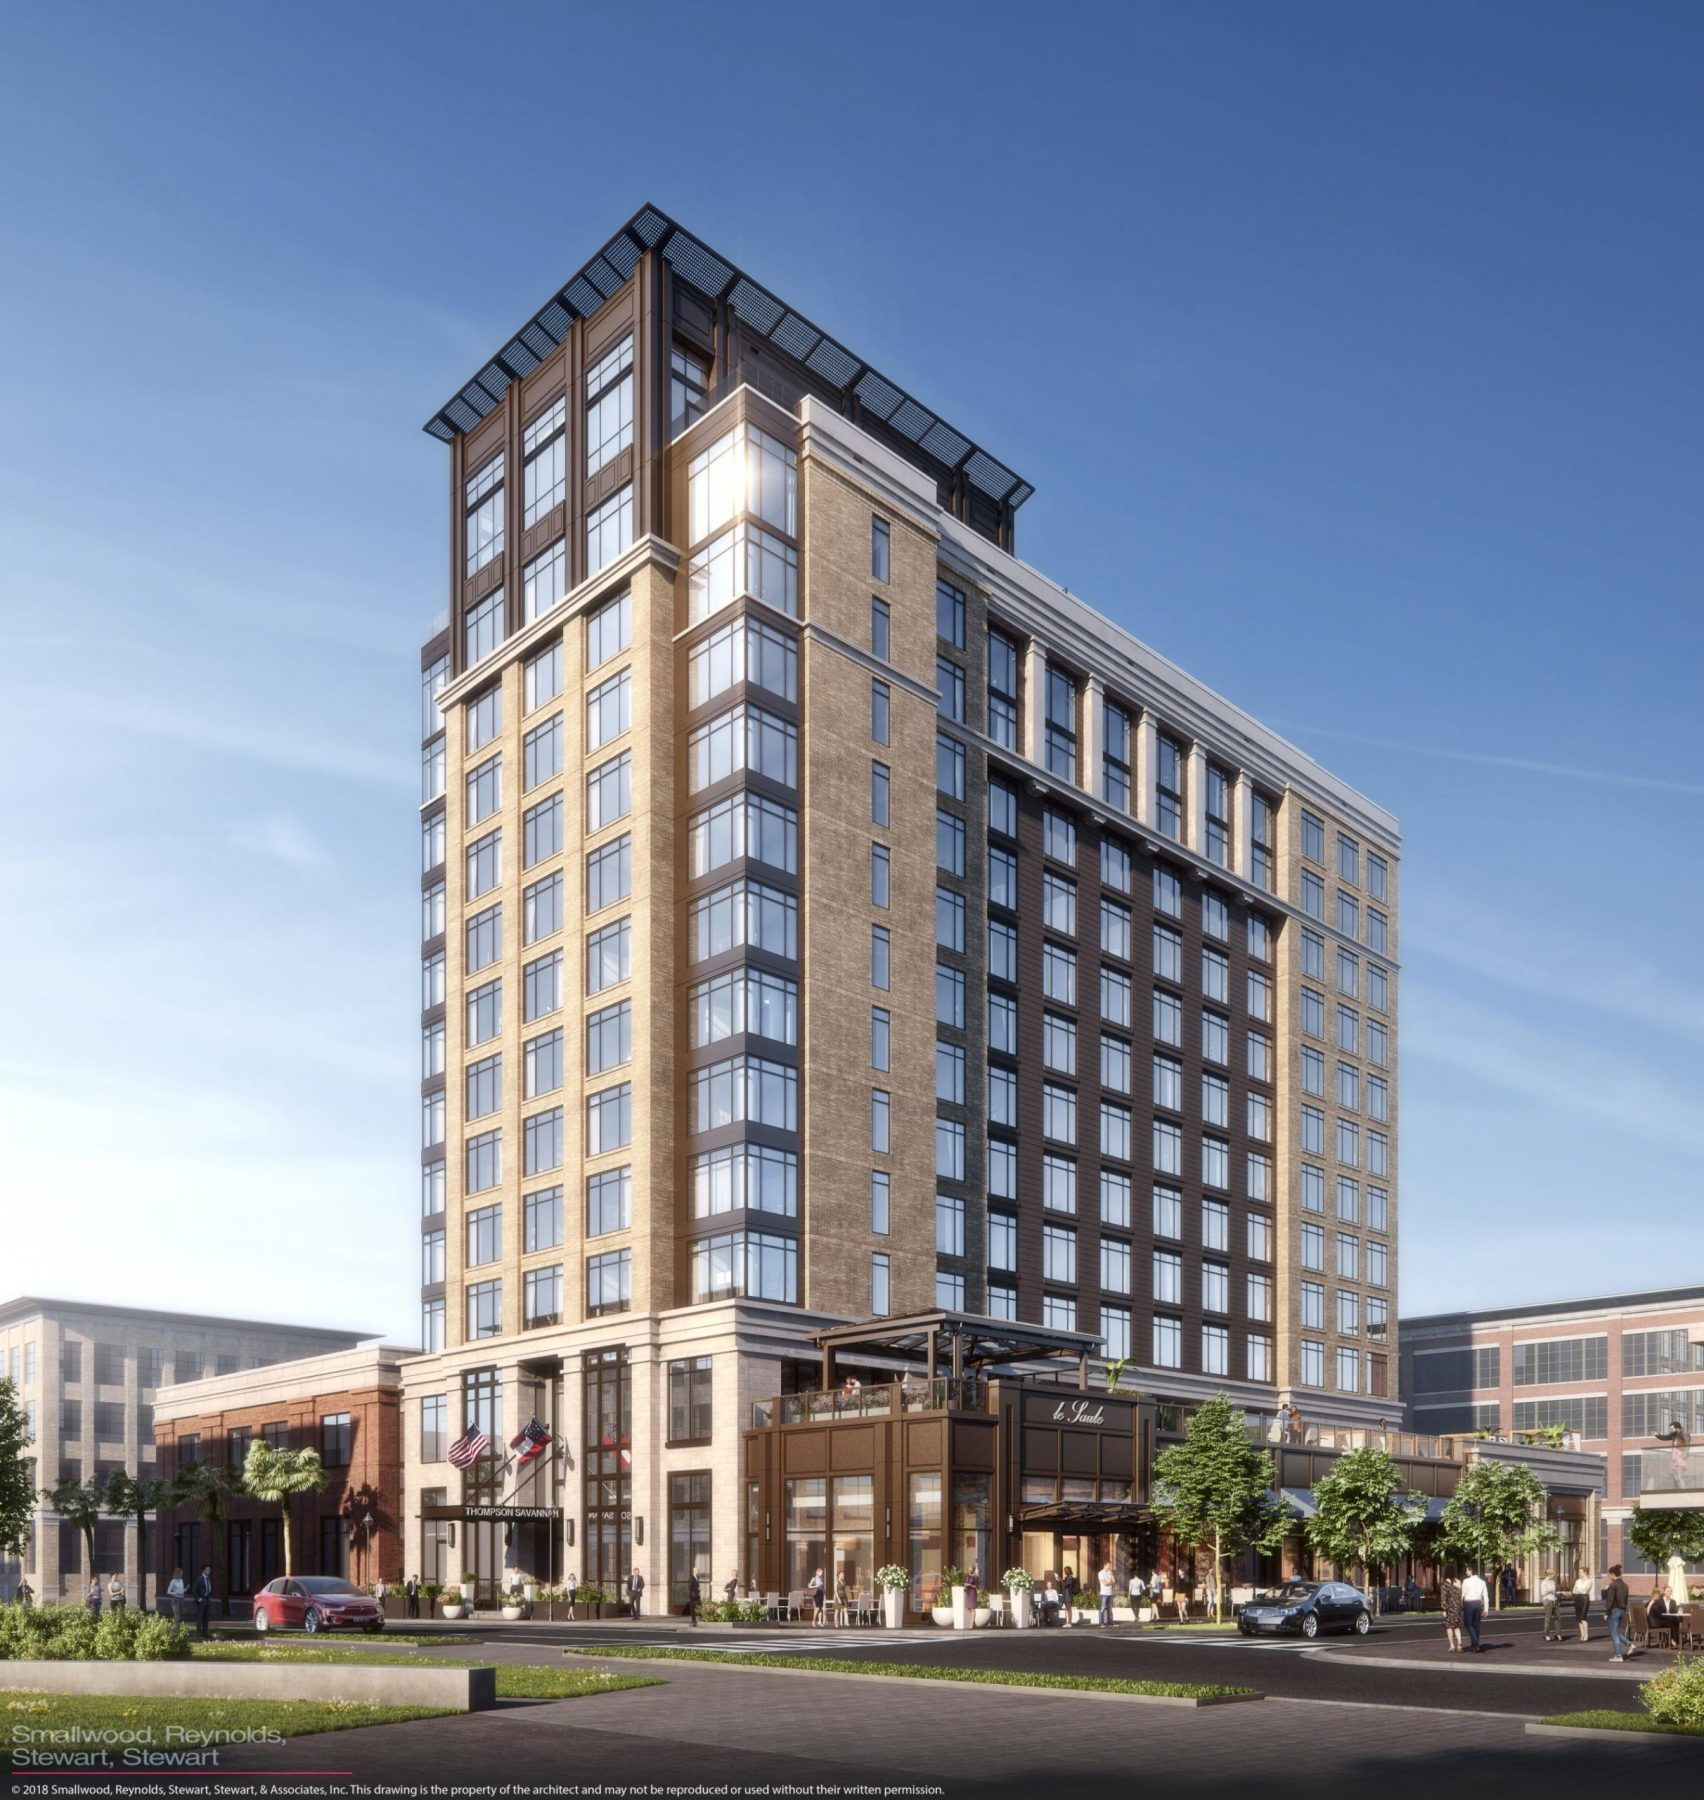 Exterior rendering of Thompson Savannah